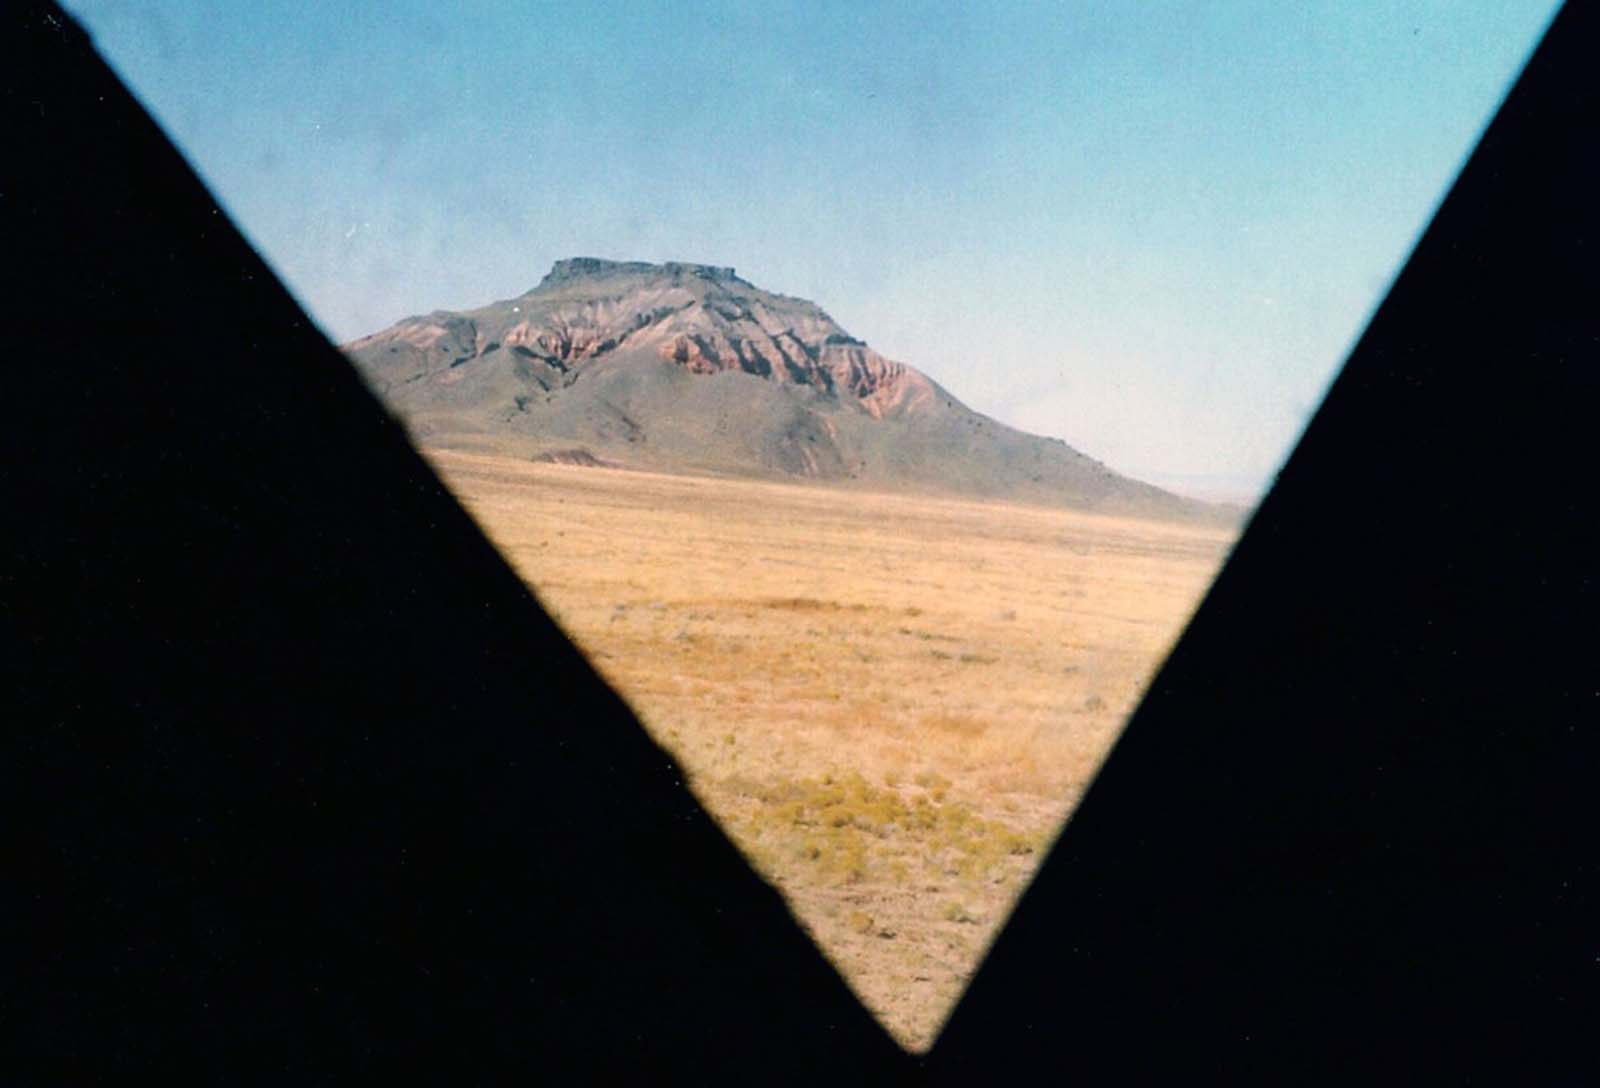 A view of Chezhin Chotah Butte as seen from inside the lunar-module mock-up through one of two triangular windows, photographed in 1965.